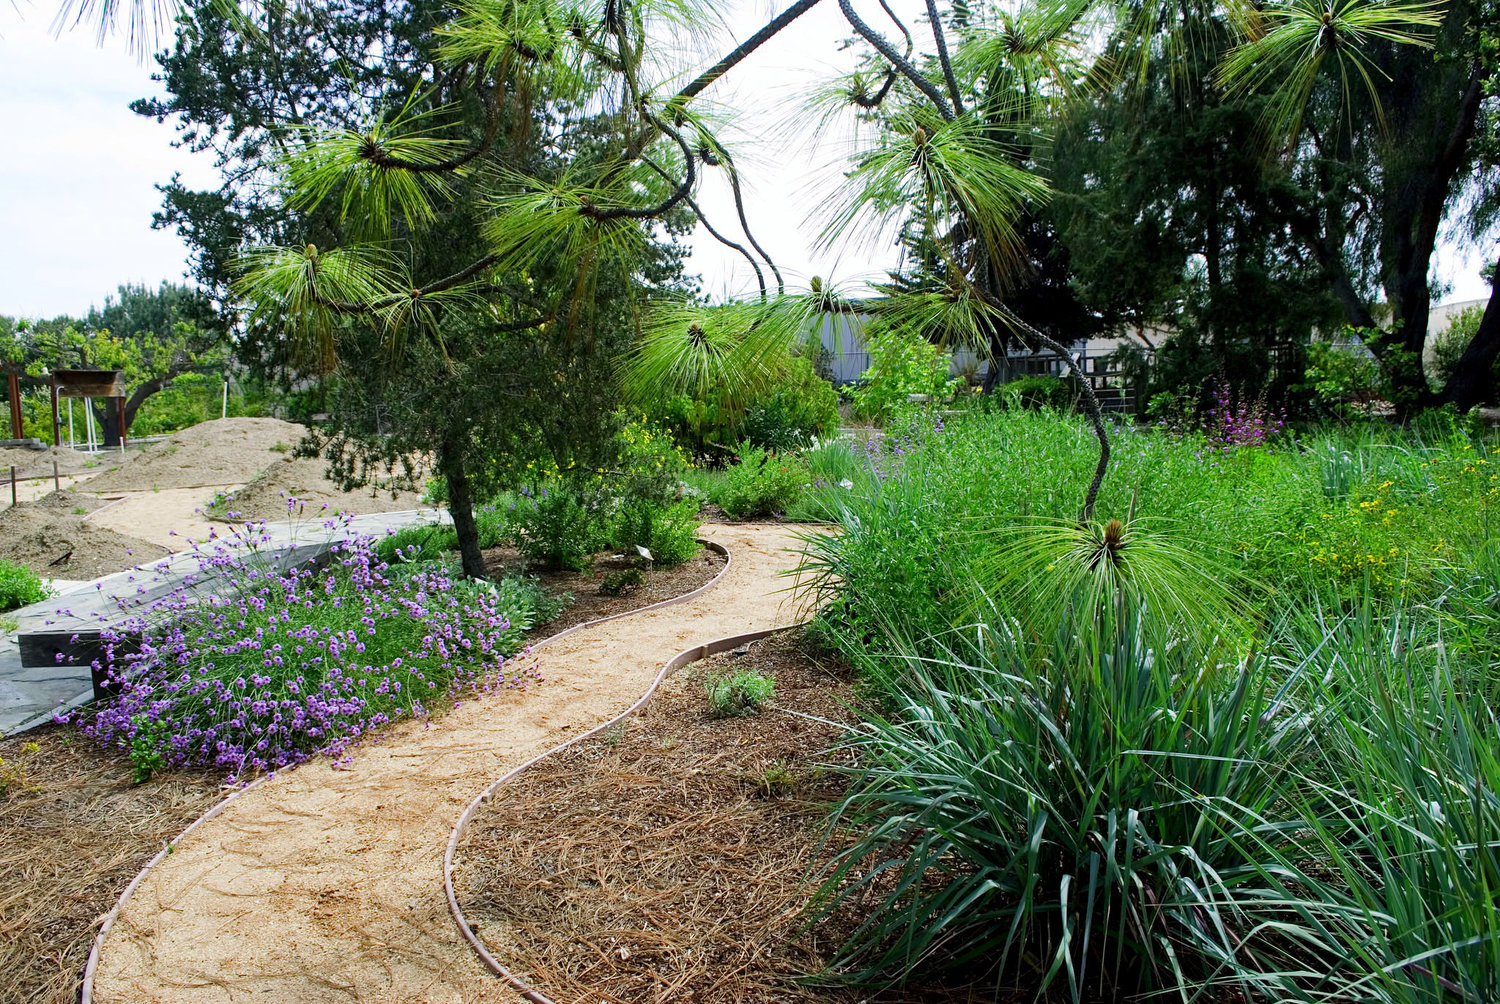 Gardeners and Landscape Contractors. California's Own Native ... - Landscape Professionals — California Native Plant Society-San Diego